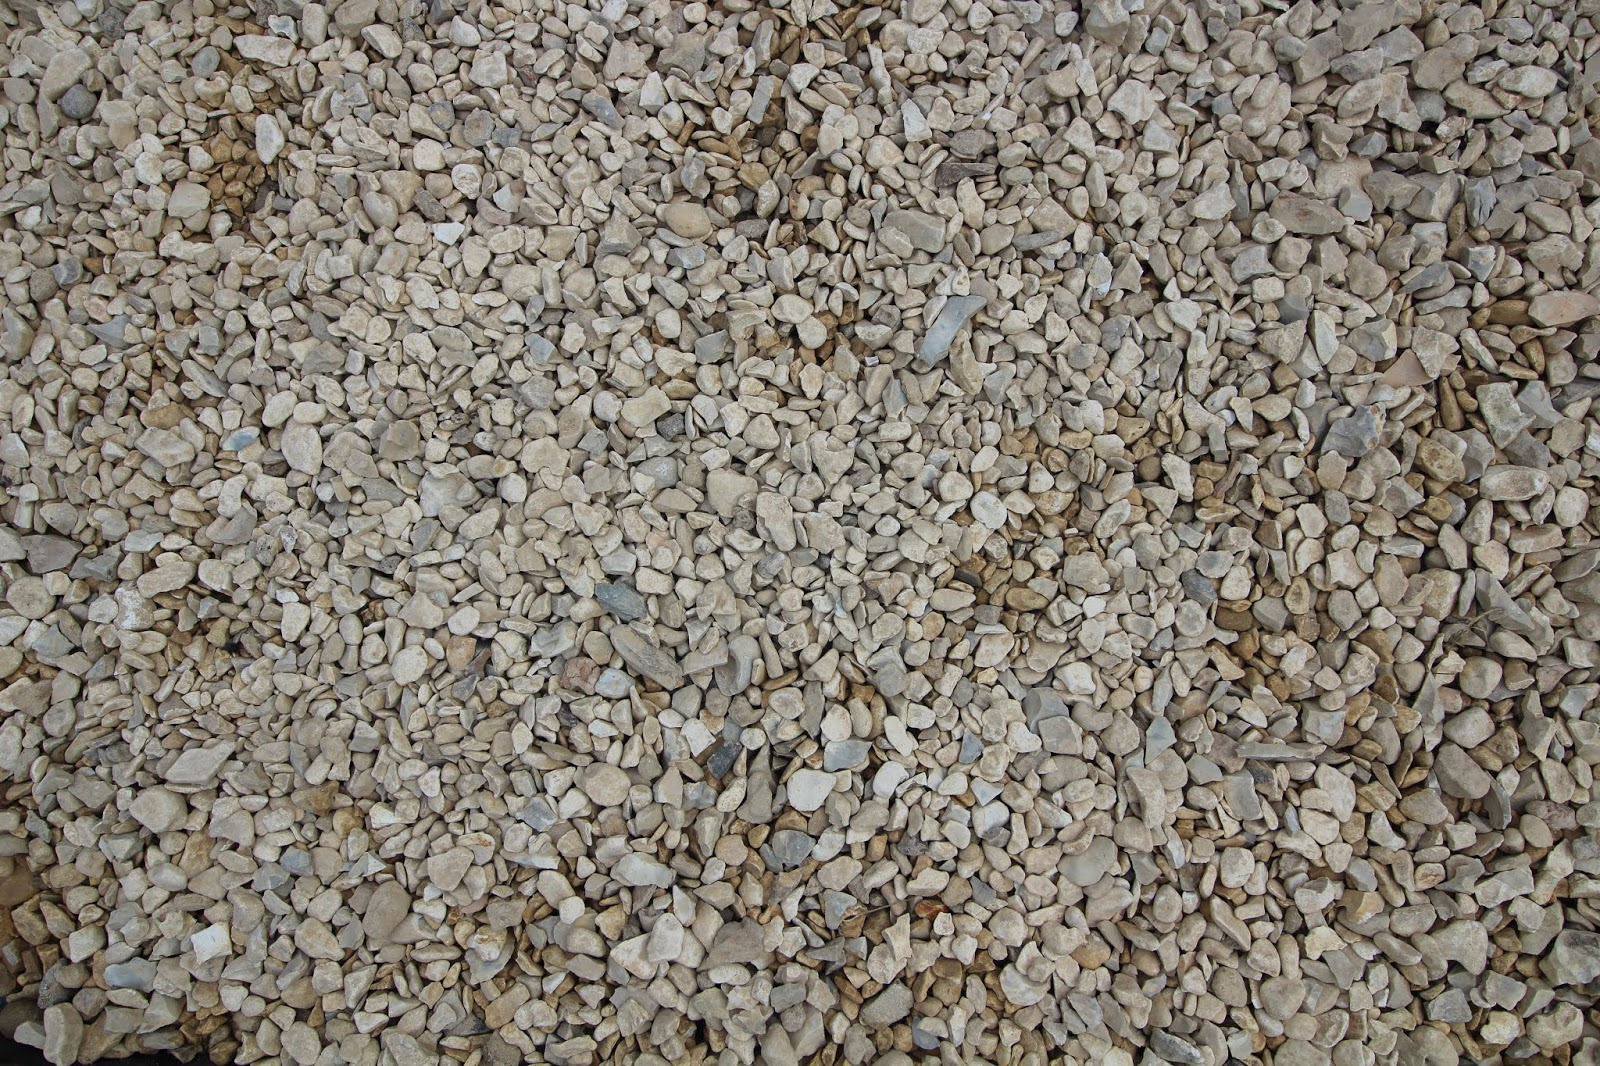 The Stone and Garden Company gravel